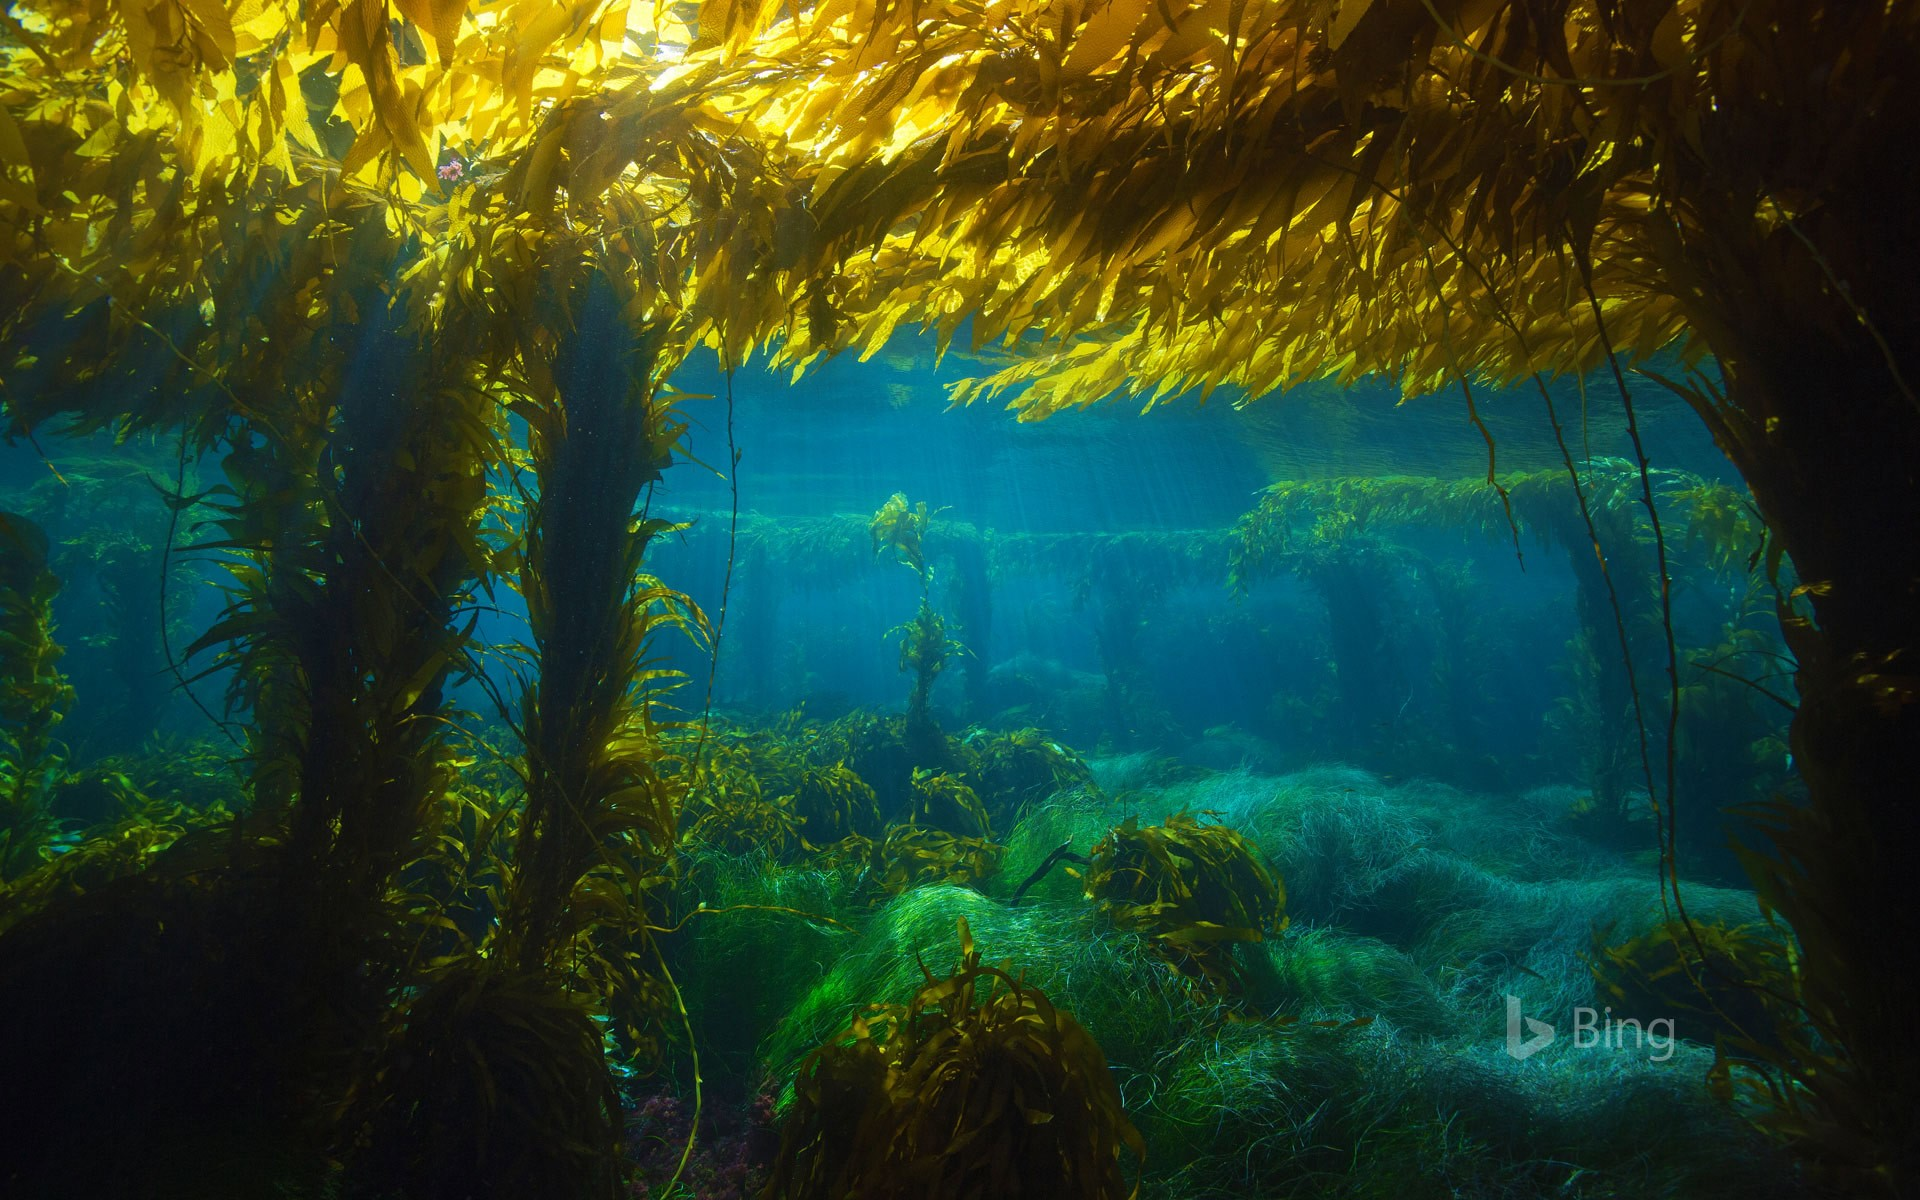 Giant kelp forest near San Clemente Island, California